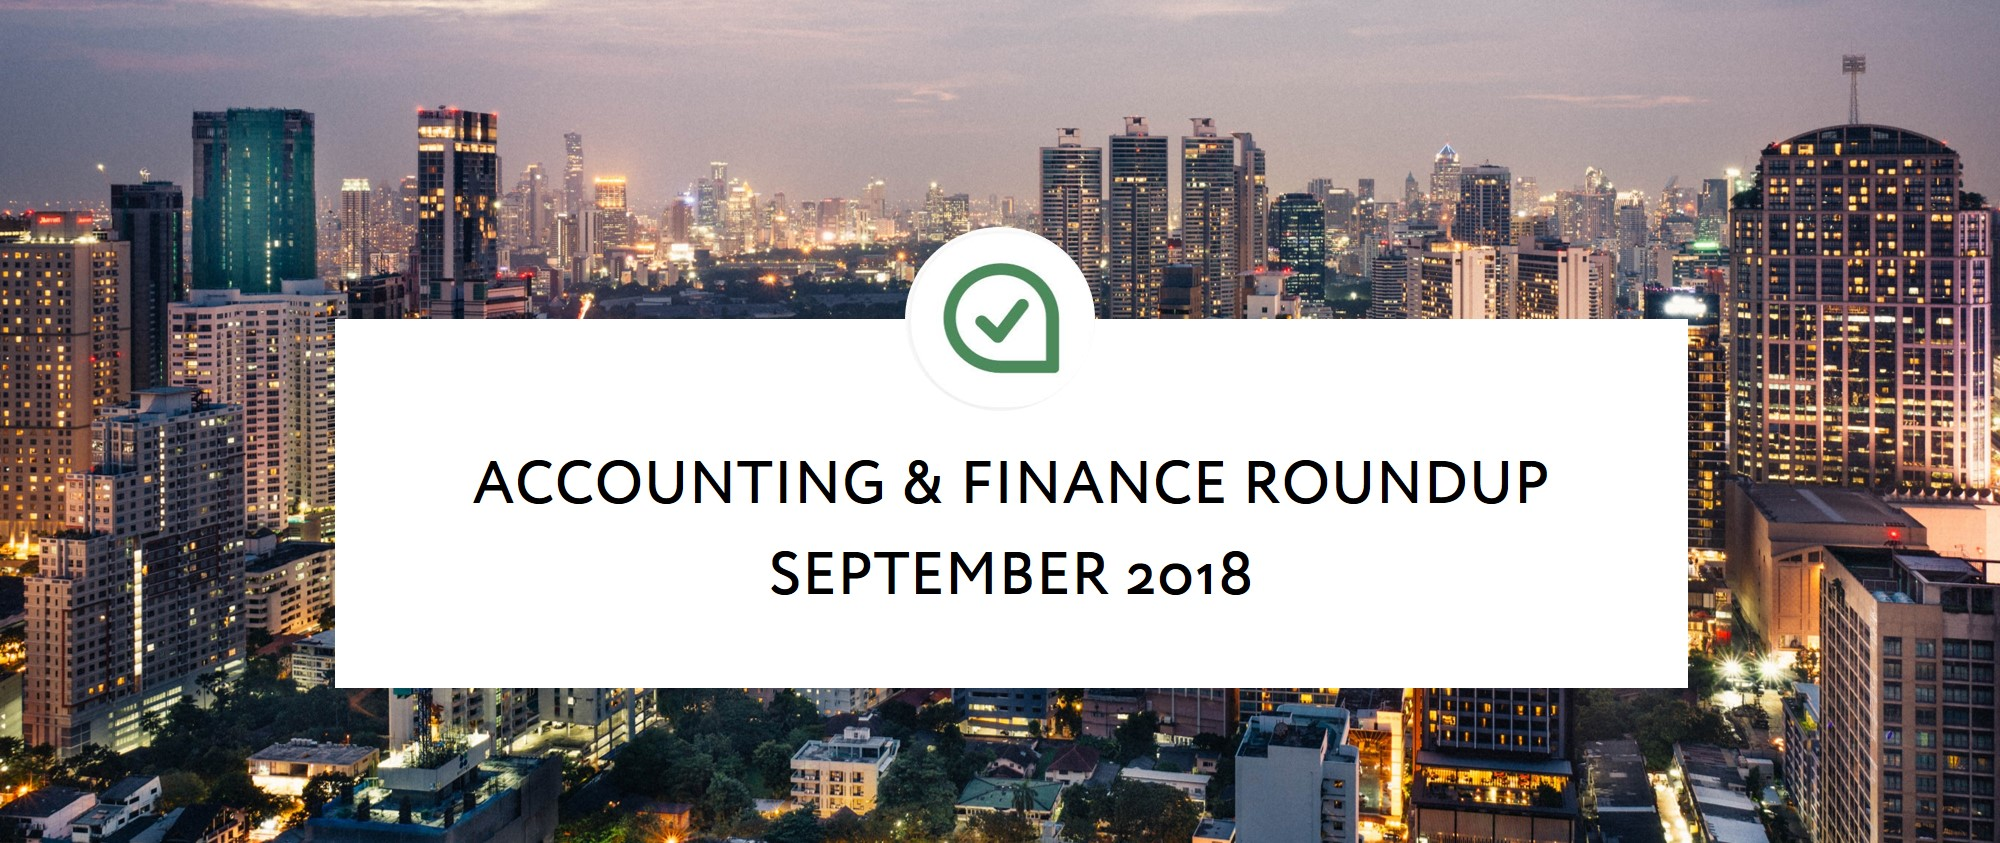 Accounting & Finance Roundup:  What did you miss in September 2018?